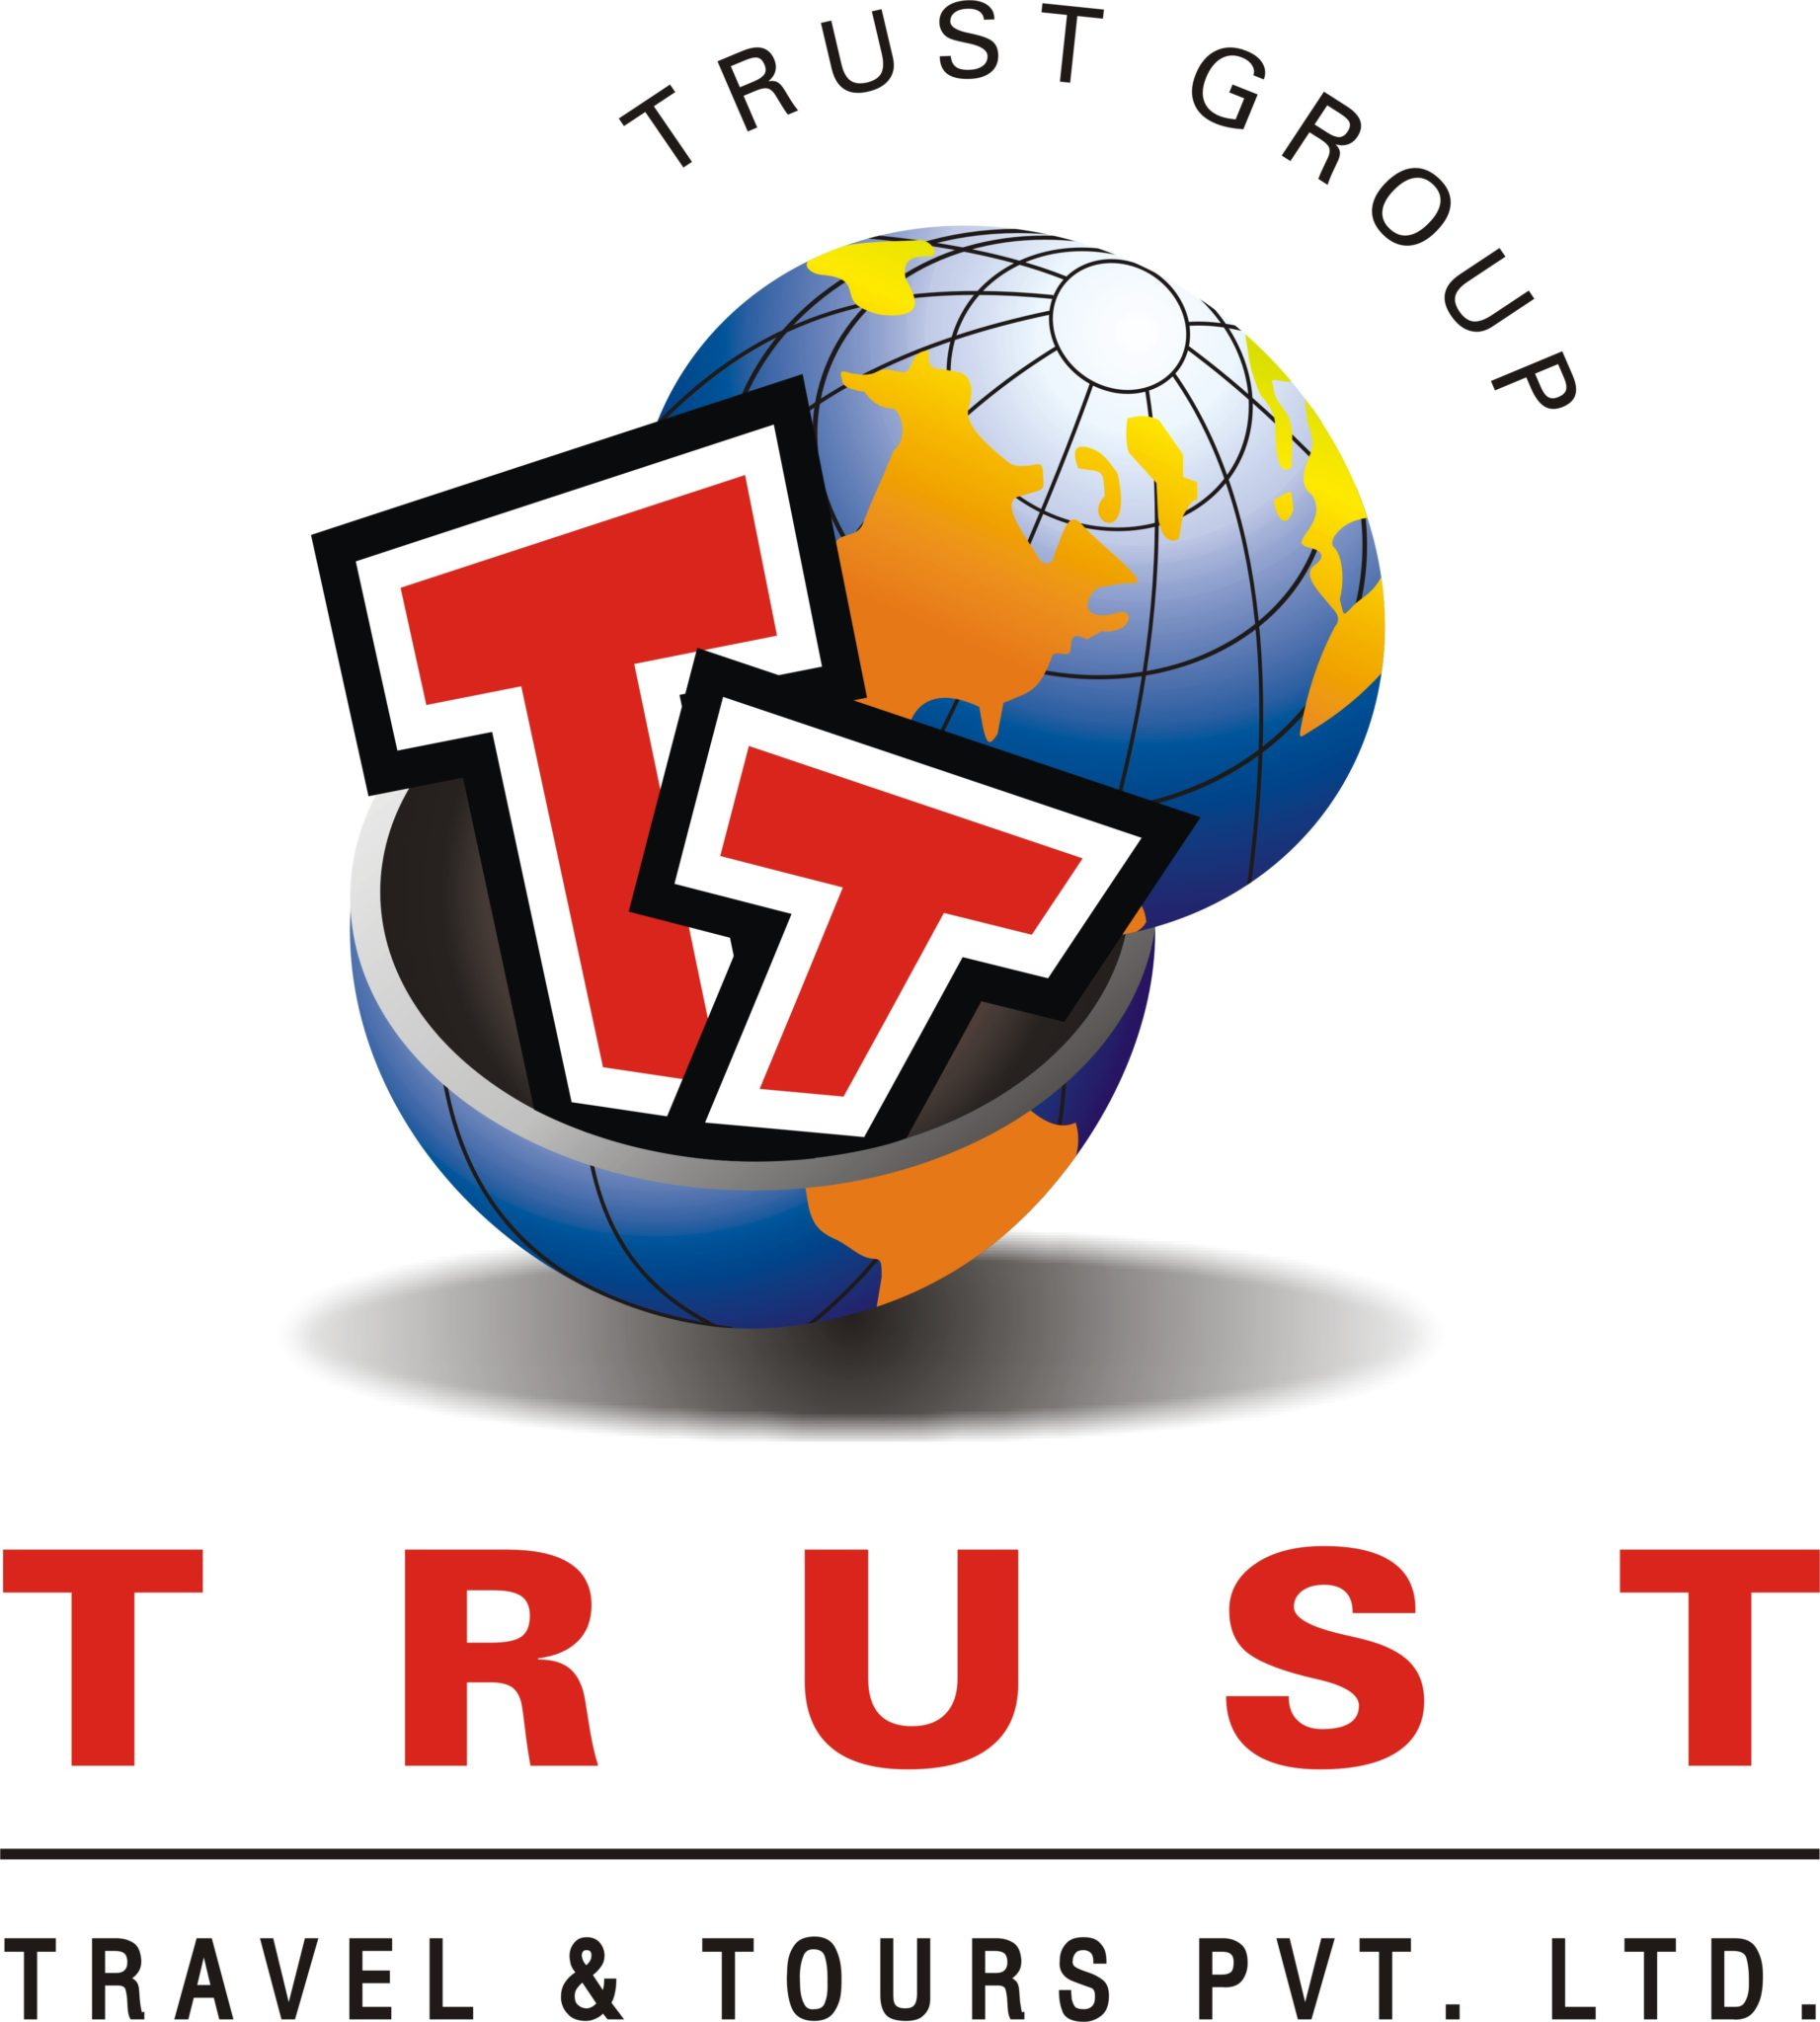 http://trusttravelandtours.com/wp-content/uploads/2016/06/Trust-Travel-Logo-High-Resolution.jpg